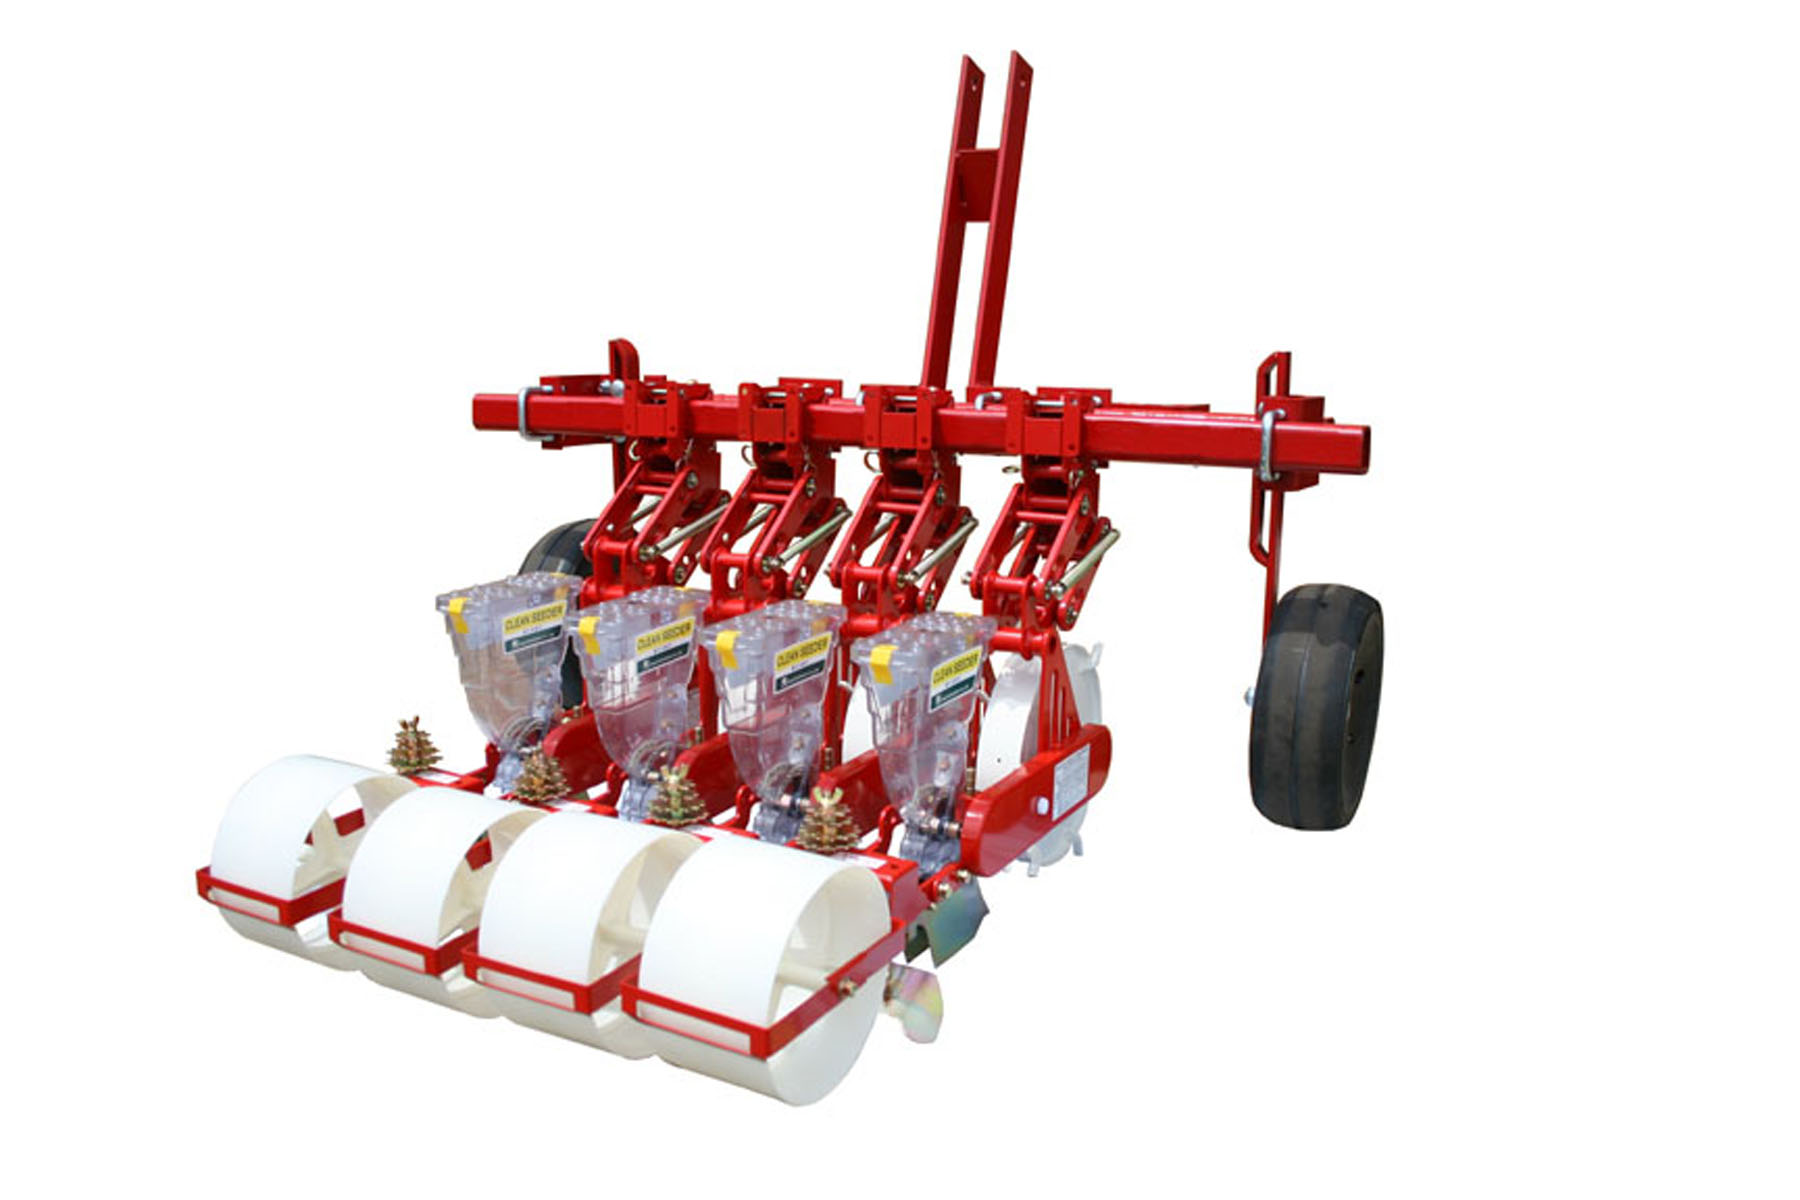 JPH-4 Jang Seeder ~3 Pt. Hitch Tractor Mount Seeder w/ Gauge Wheels & Setback Toolbar